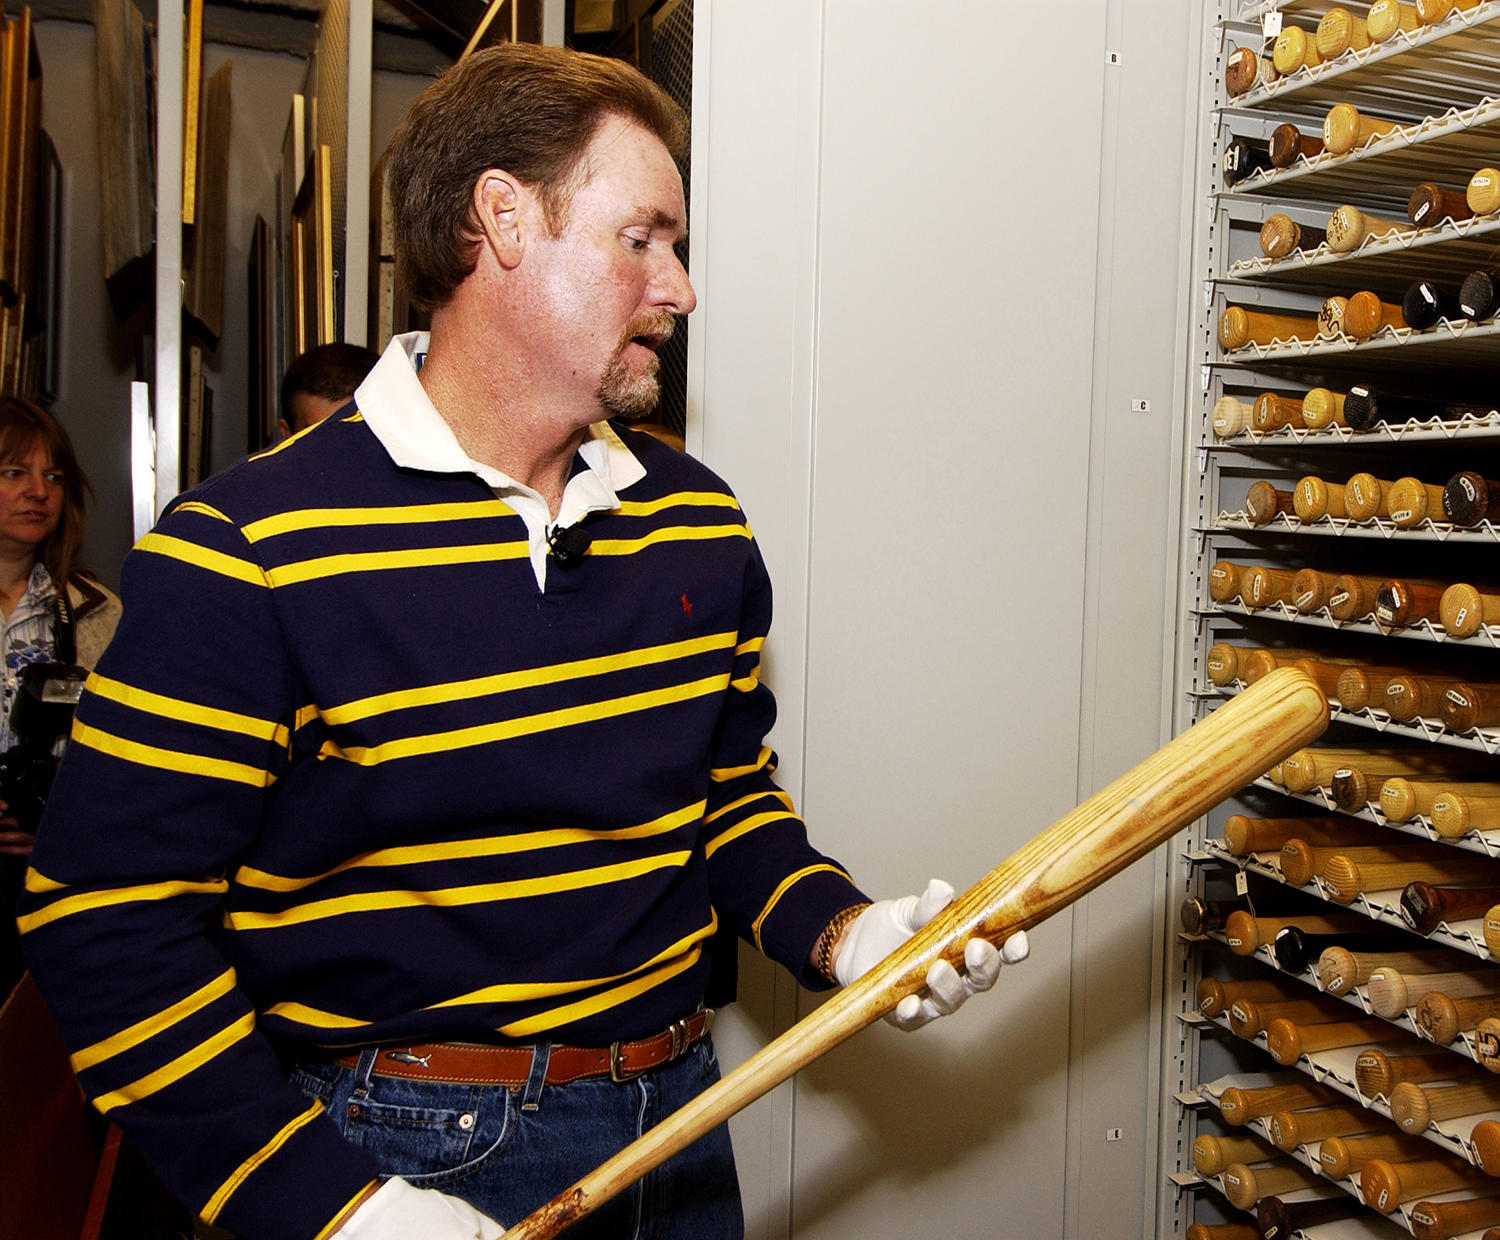 Wade Boggs holds the bat he used to hit the first home run in Tampa Bay Devil Rays history in 1998 while on his Hall of Fame Orientation Visit in May of 2005. (Milo Stewart Jr. / National Baseball Hall of Fame)